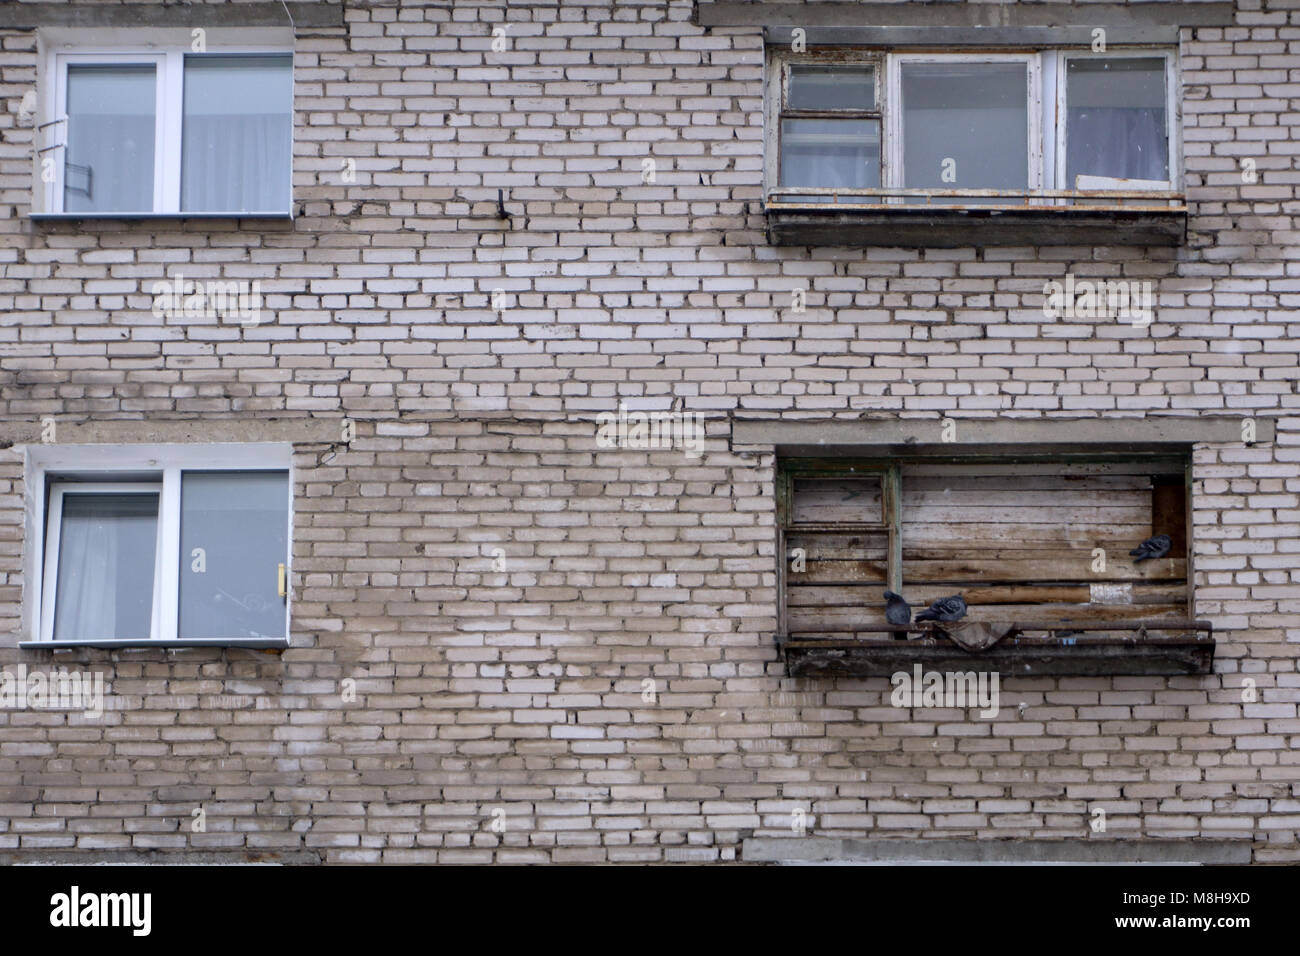 room in an old house with boarded up window - Stock Image